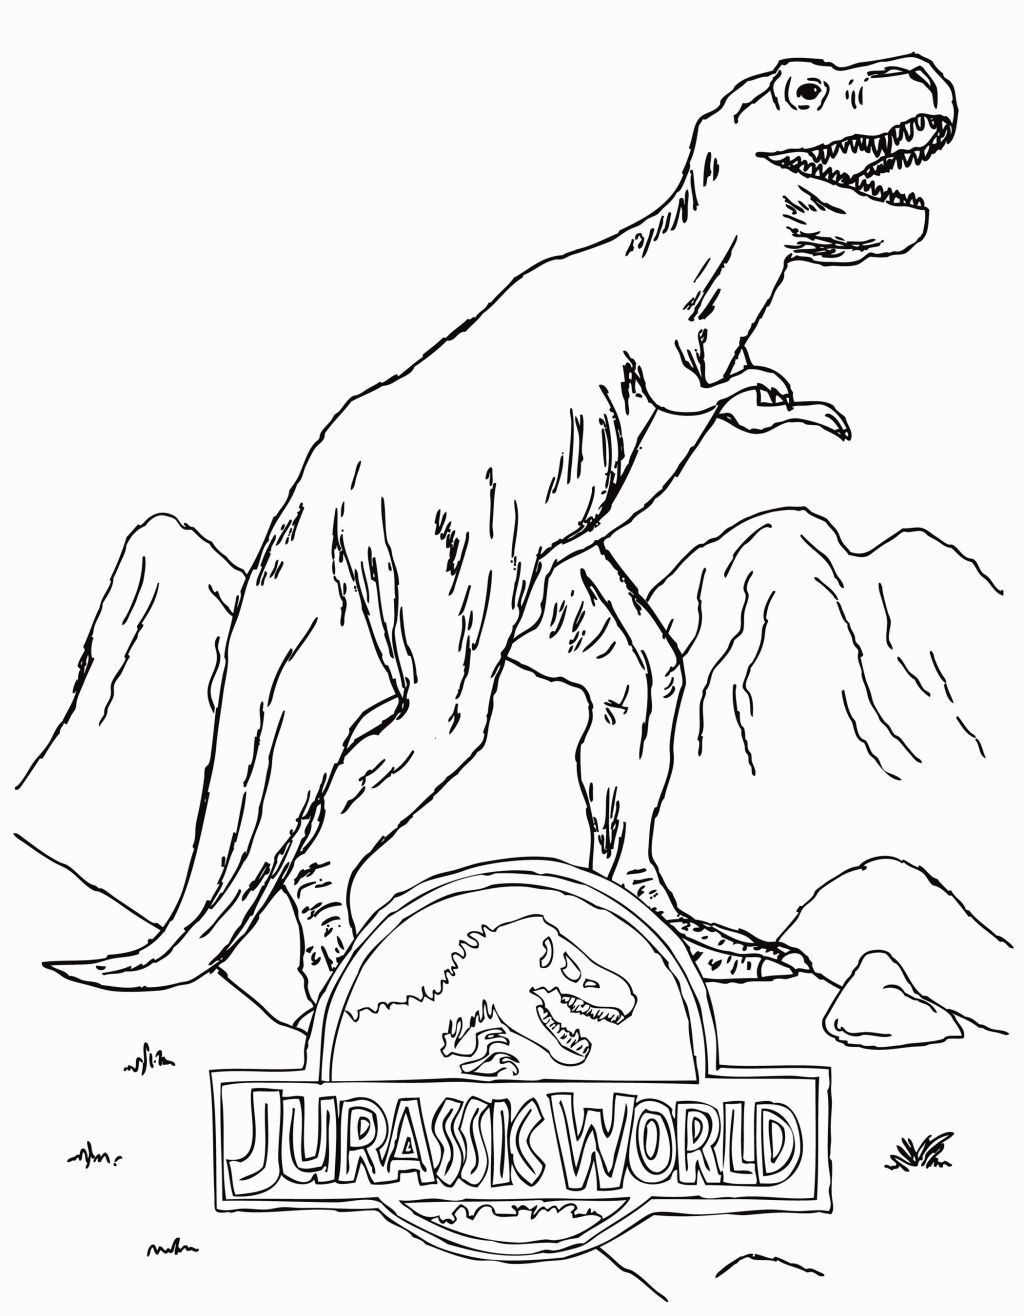 Jurassic World Coloring Sheets